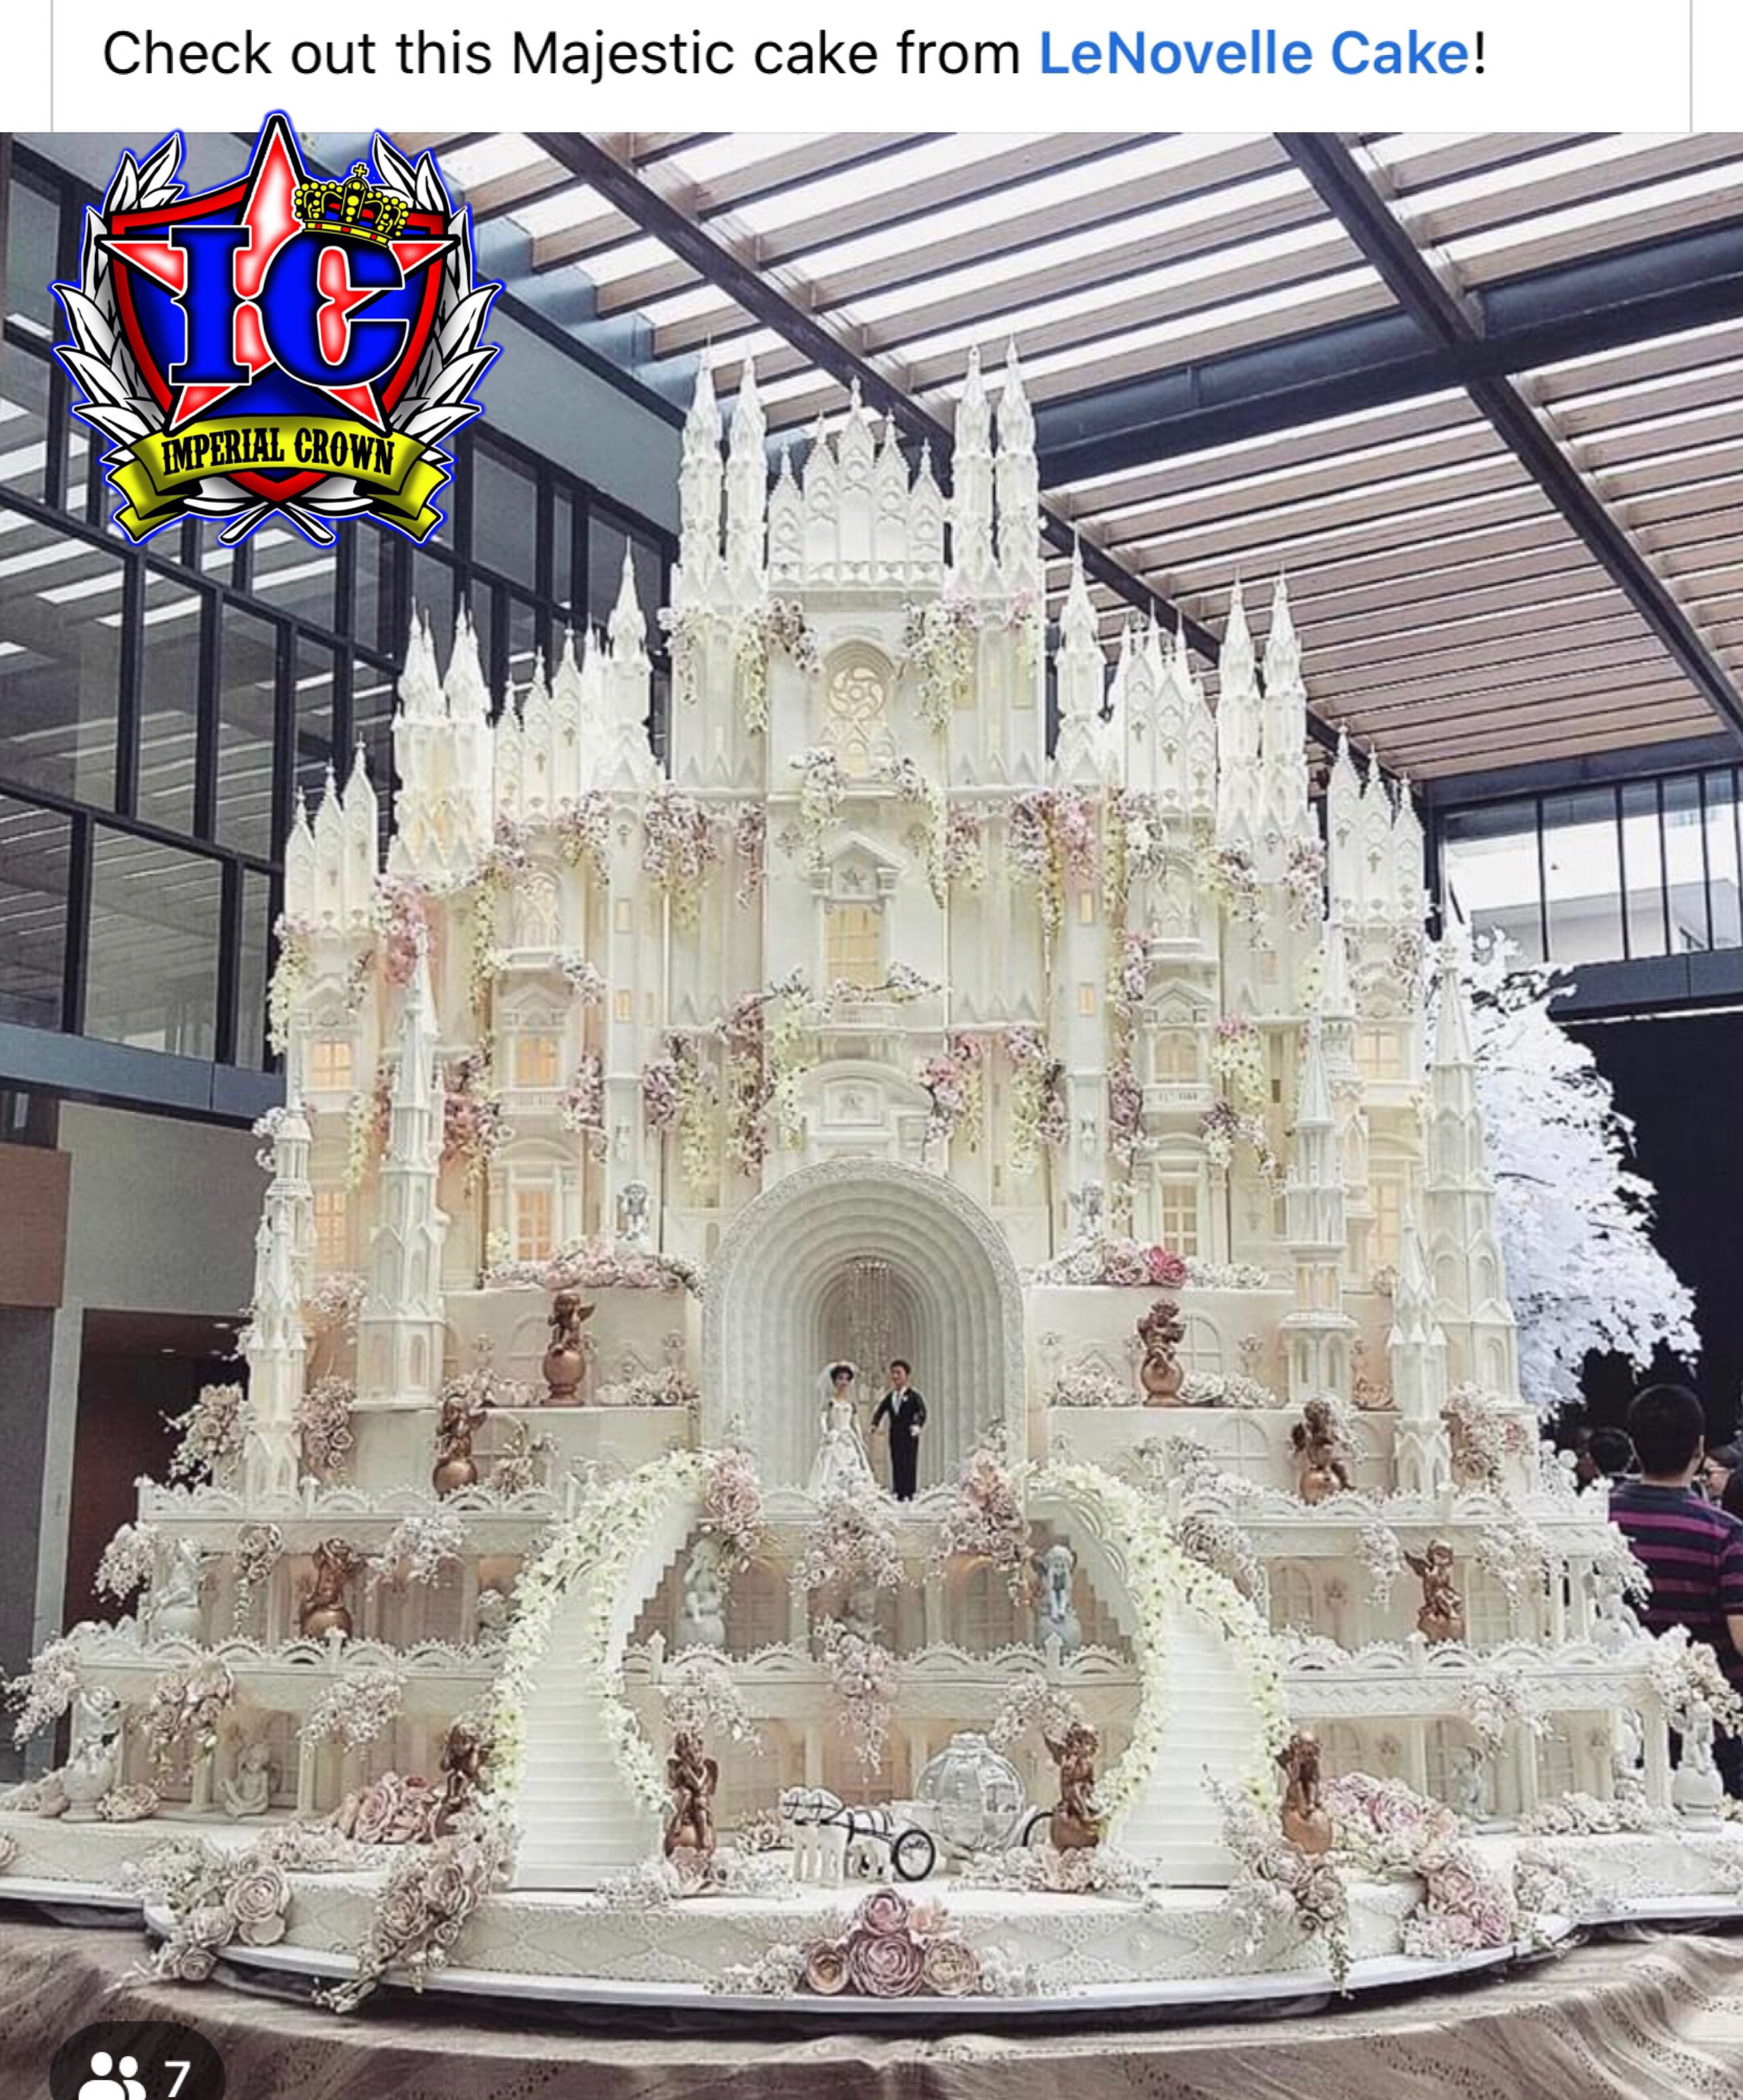 Check out this majestic cake from LeNovelle Cake